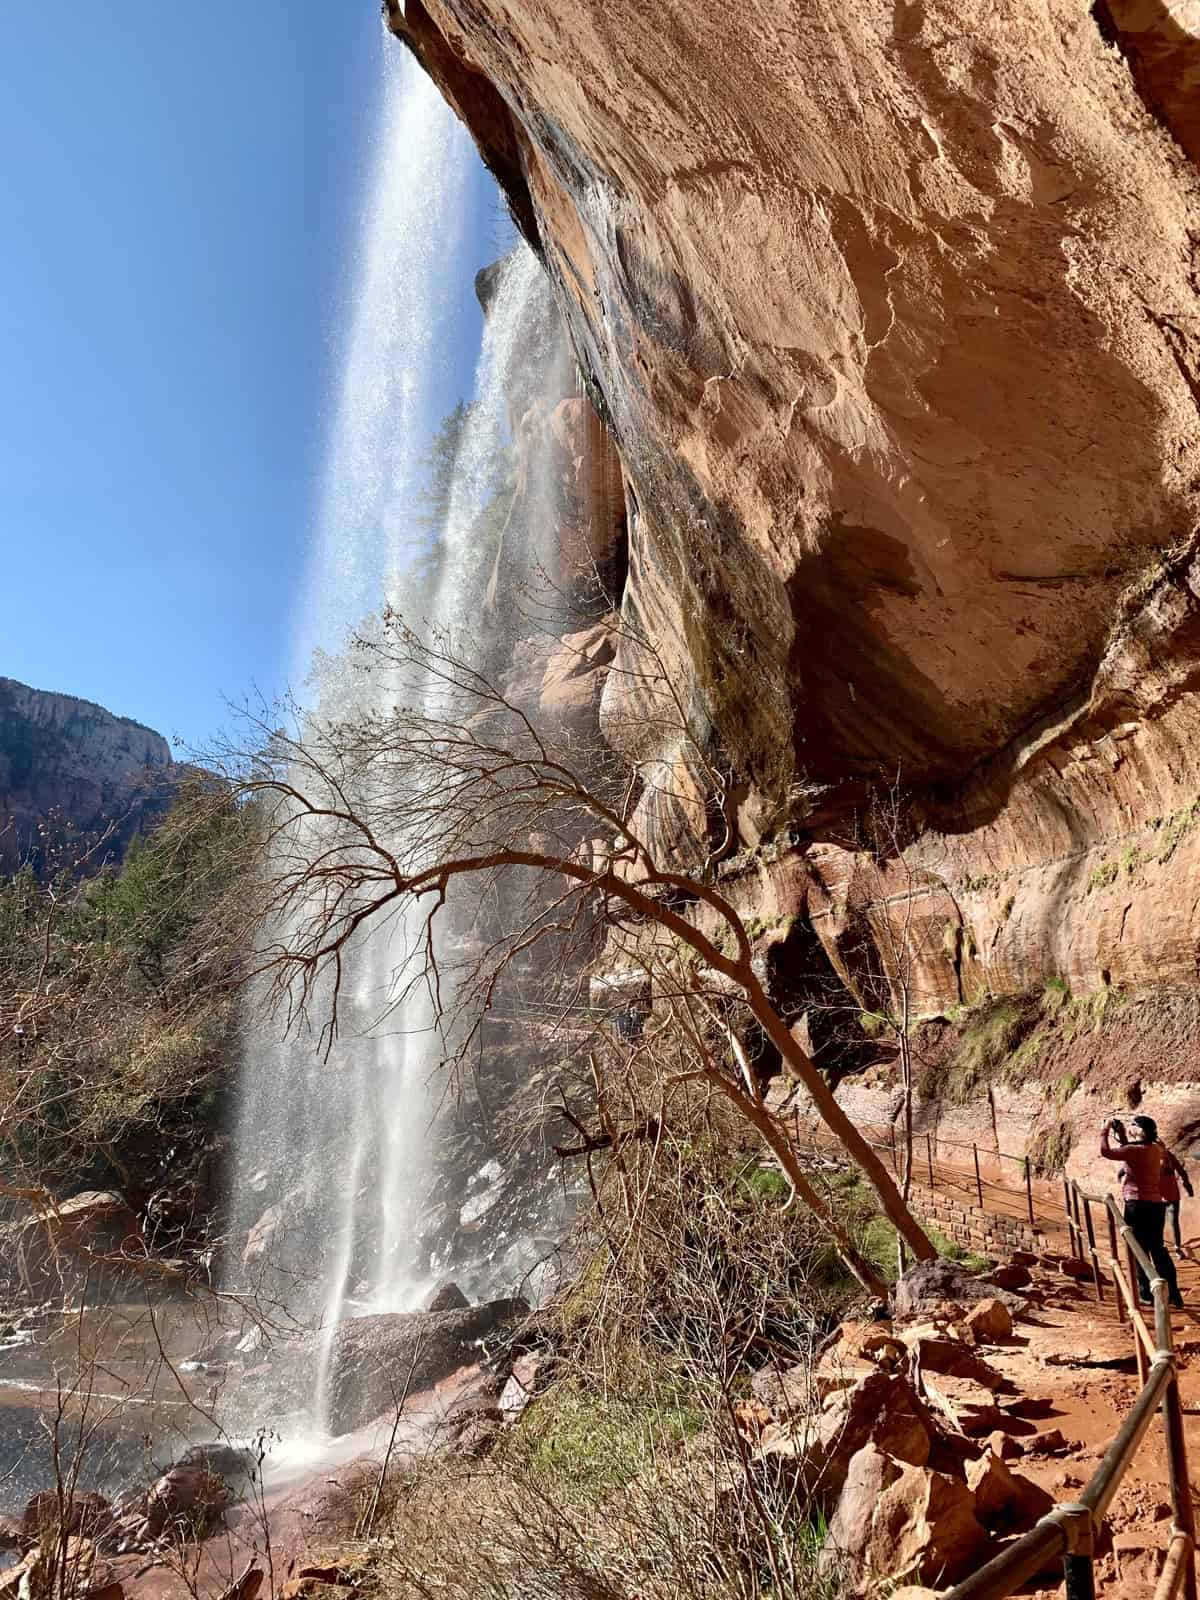 What to do at Zion during COVID